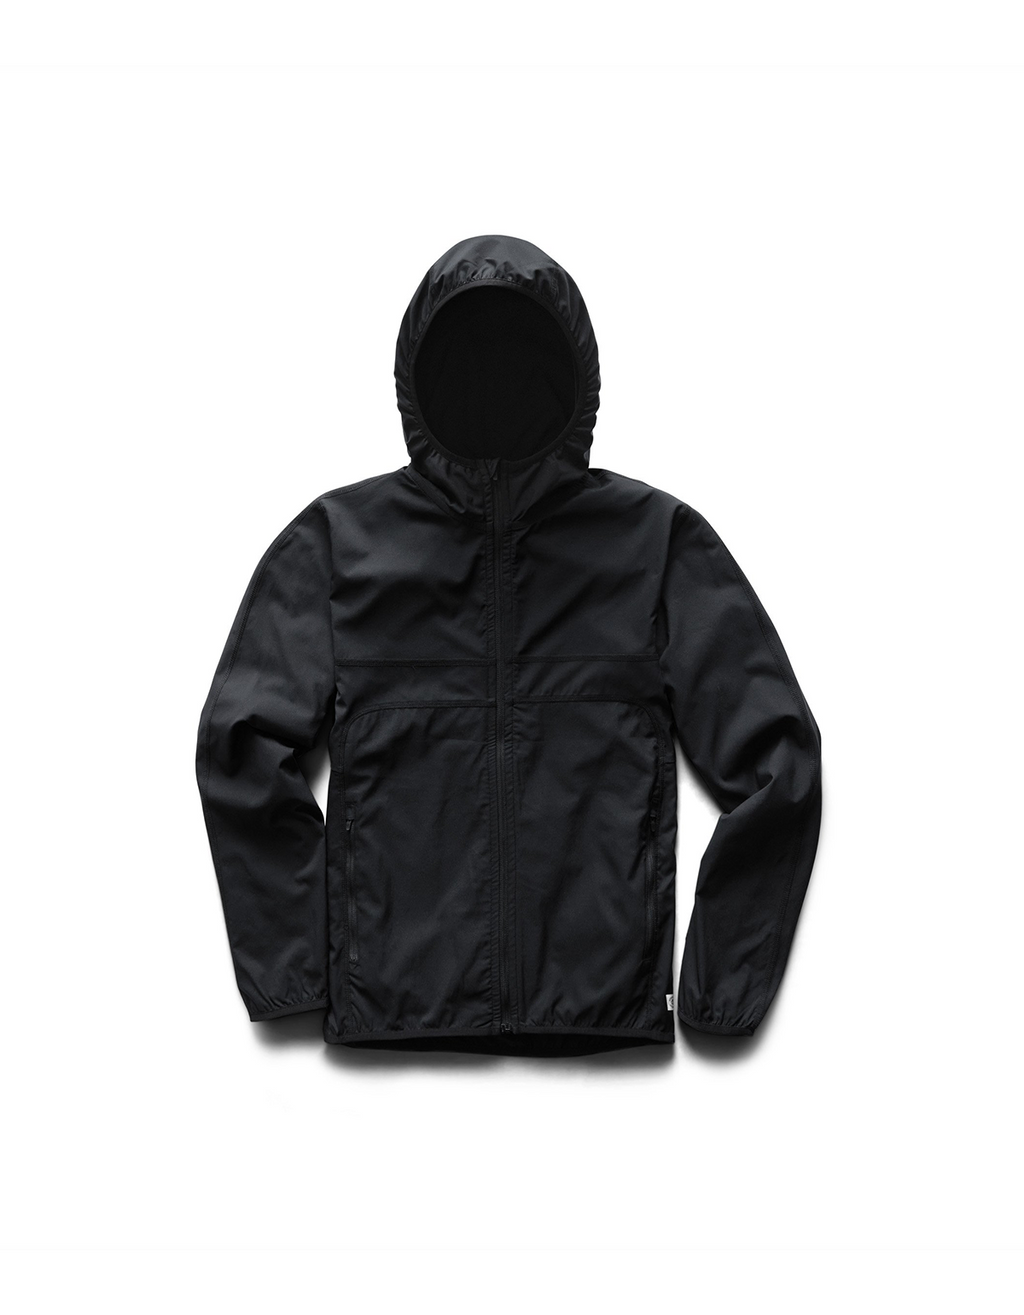 Schoeller Night Run Jacket